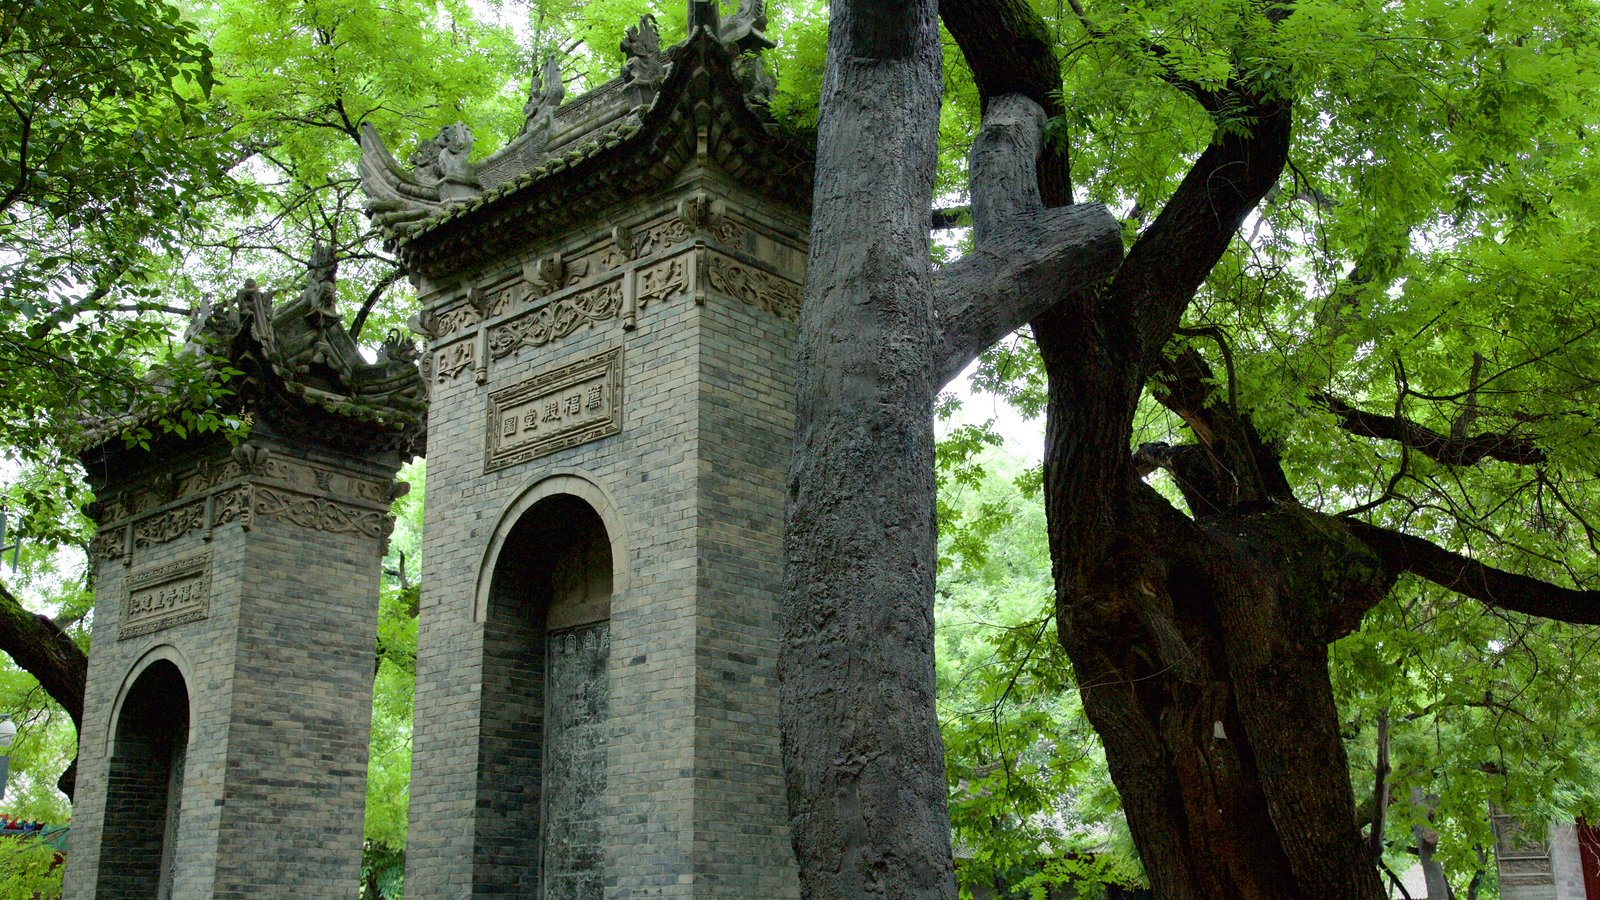 Giant Wild Goose Pagoda featuring a garden and a temple or place of worship